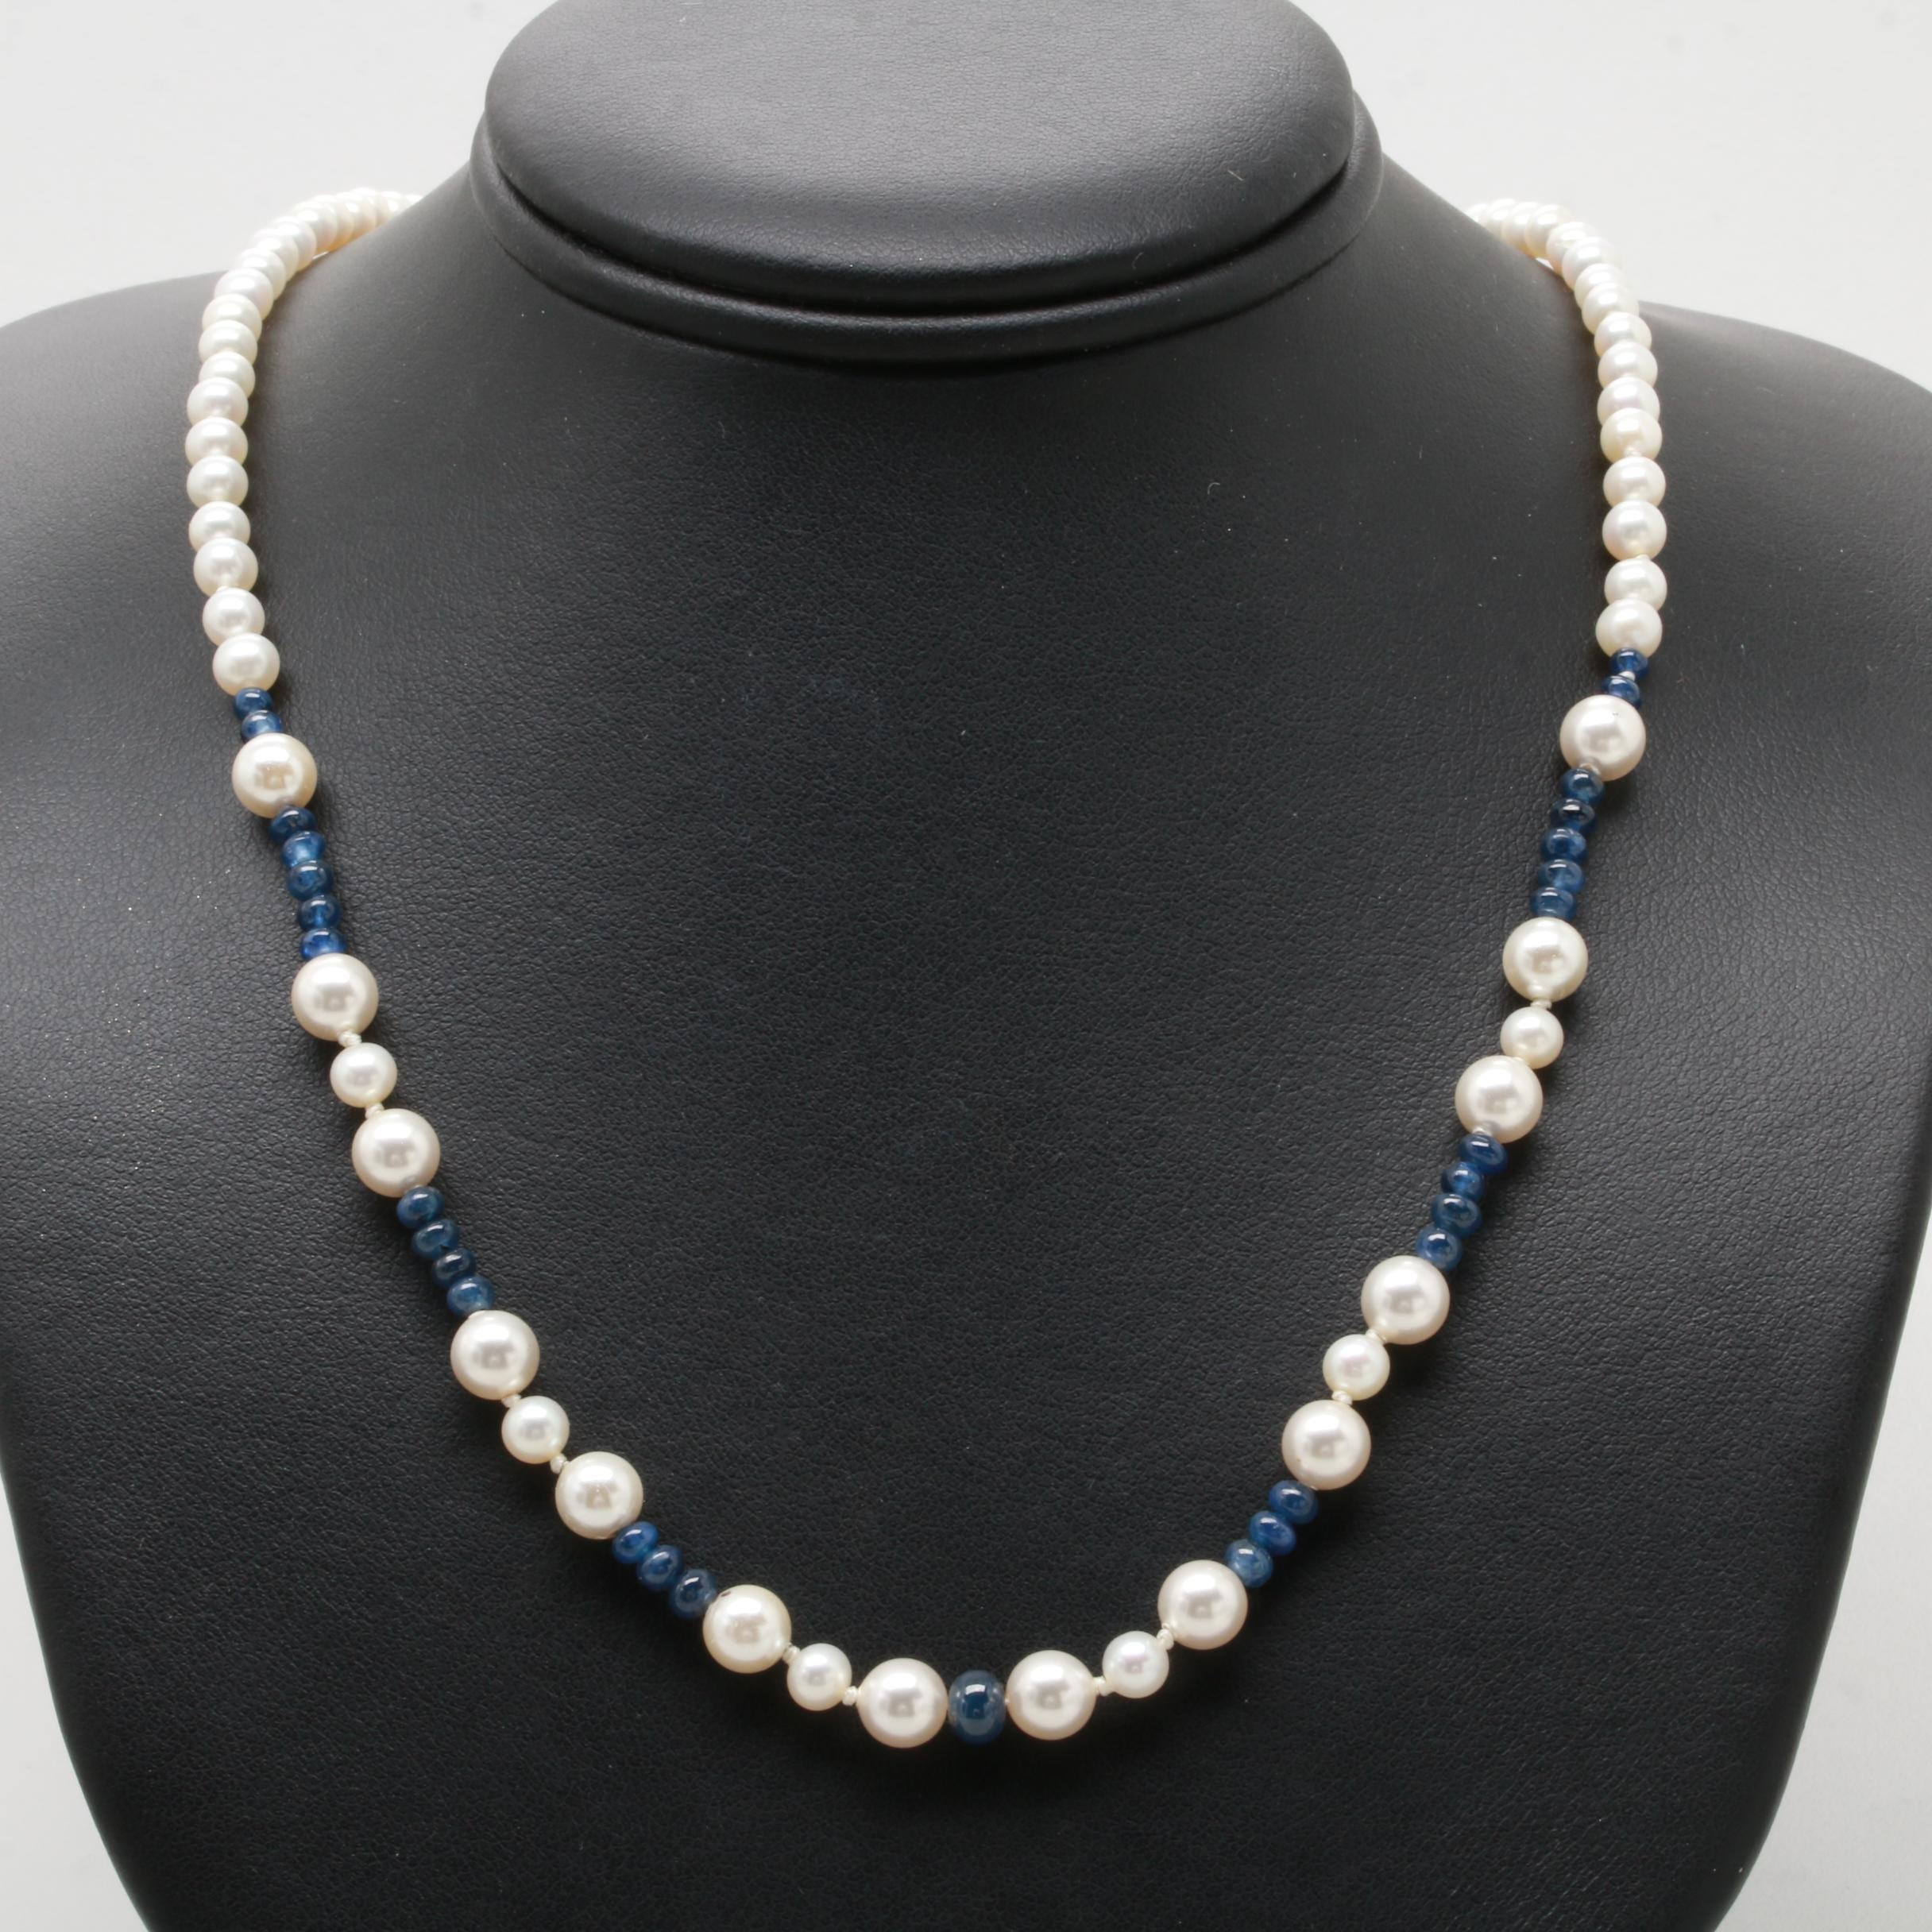 Sterling Silver Imitation and Cultured Pearl Necklace with Sapphire